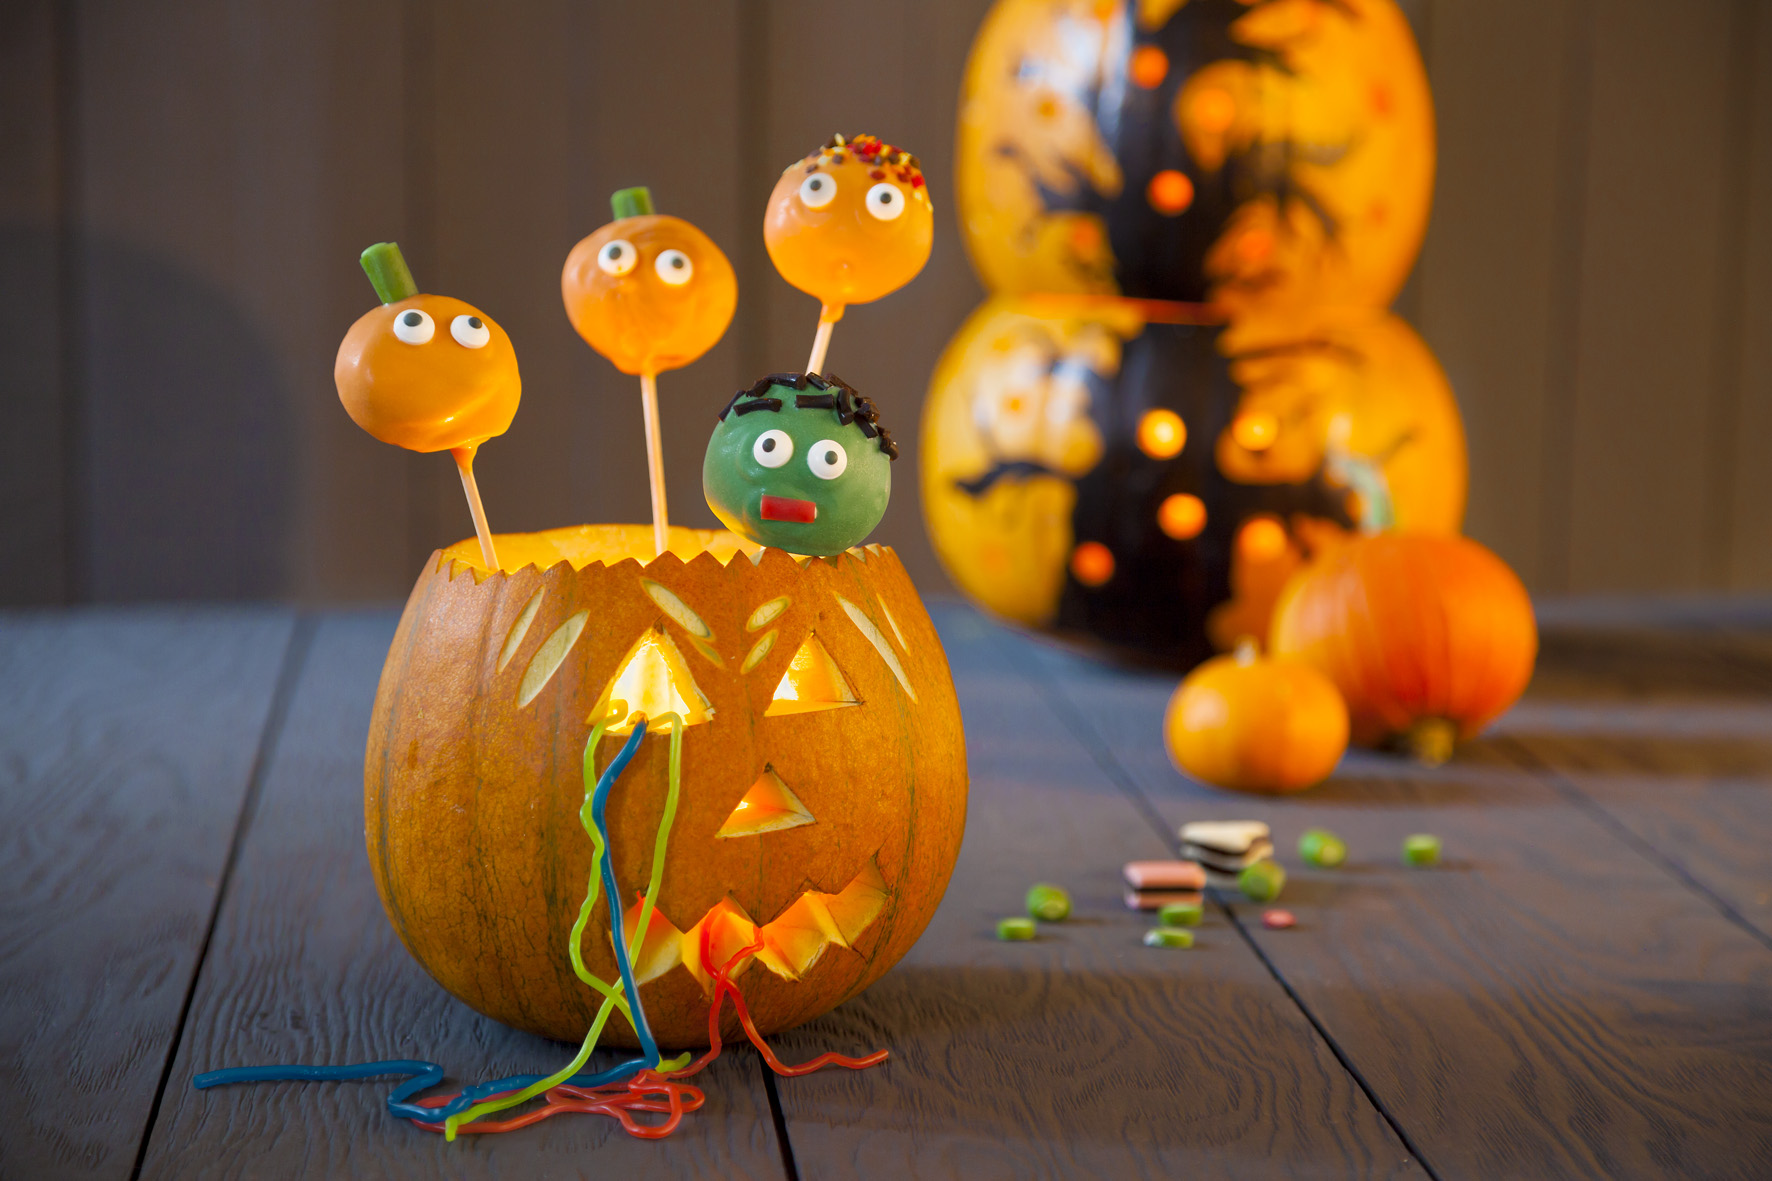 halloween deko selber machen: diy halloween party deko »